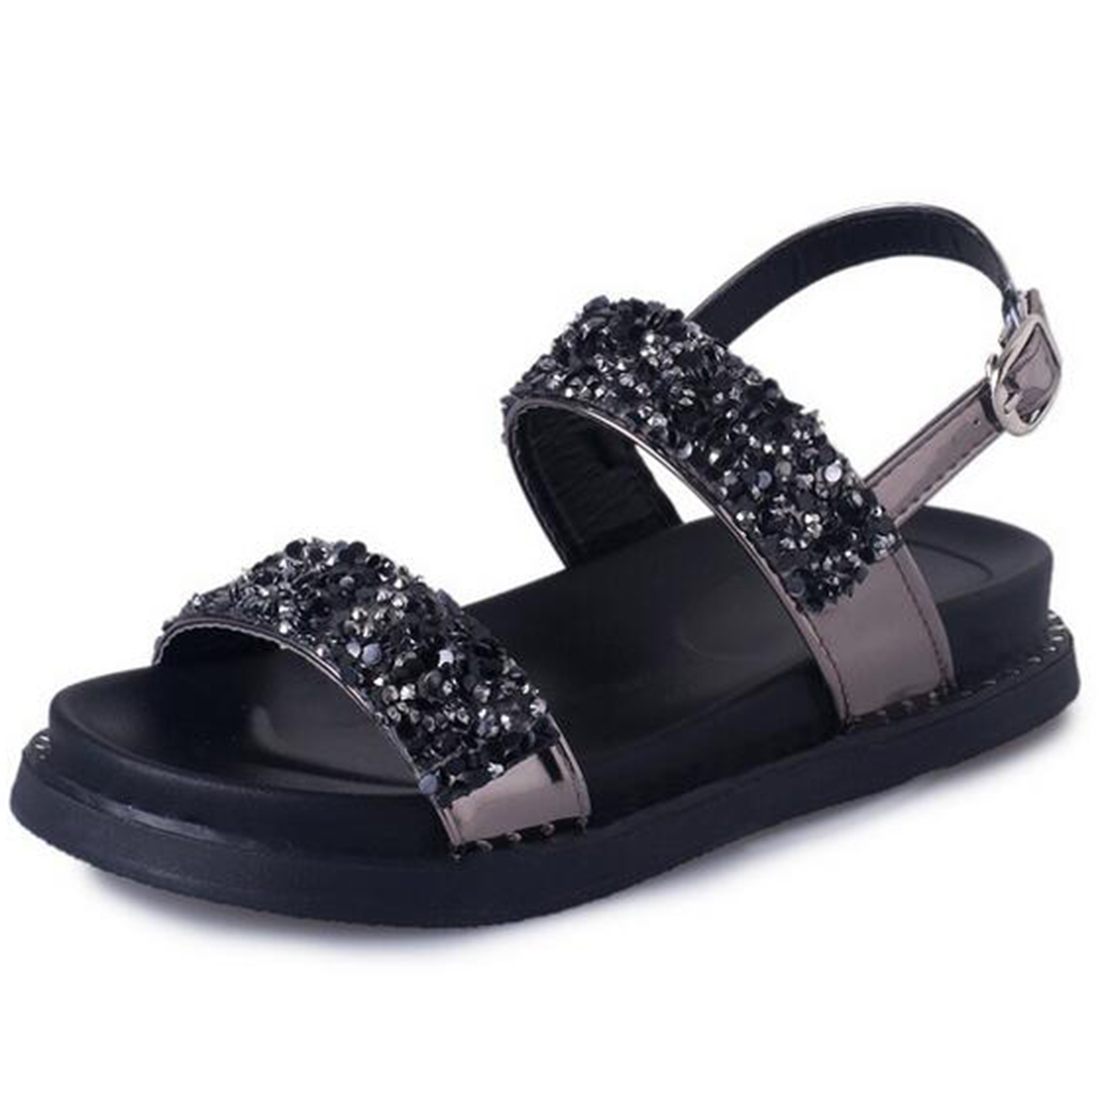 Black sandals bling - Shoes Women Sandals Summer New Sweet Bling Crystal Zapatos Mujer Sweet Flat Toe Wedge Stripe Floral